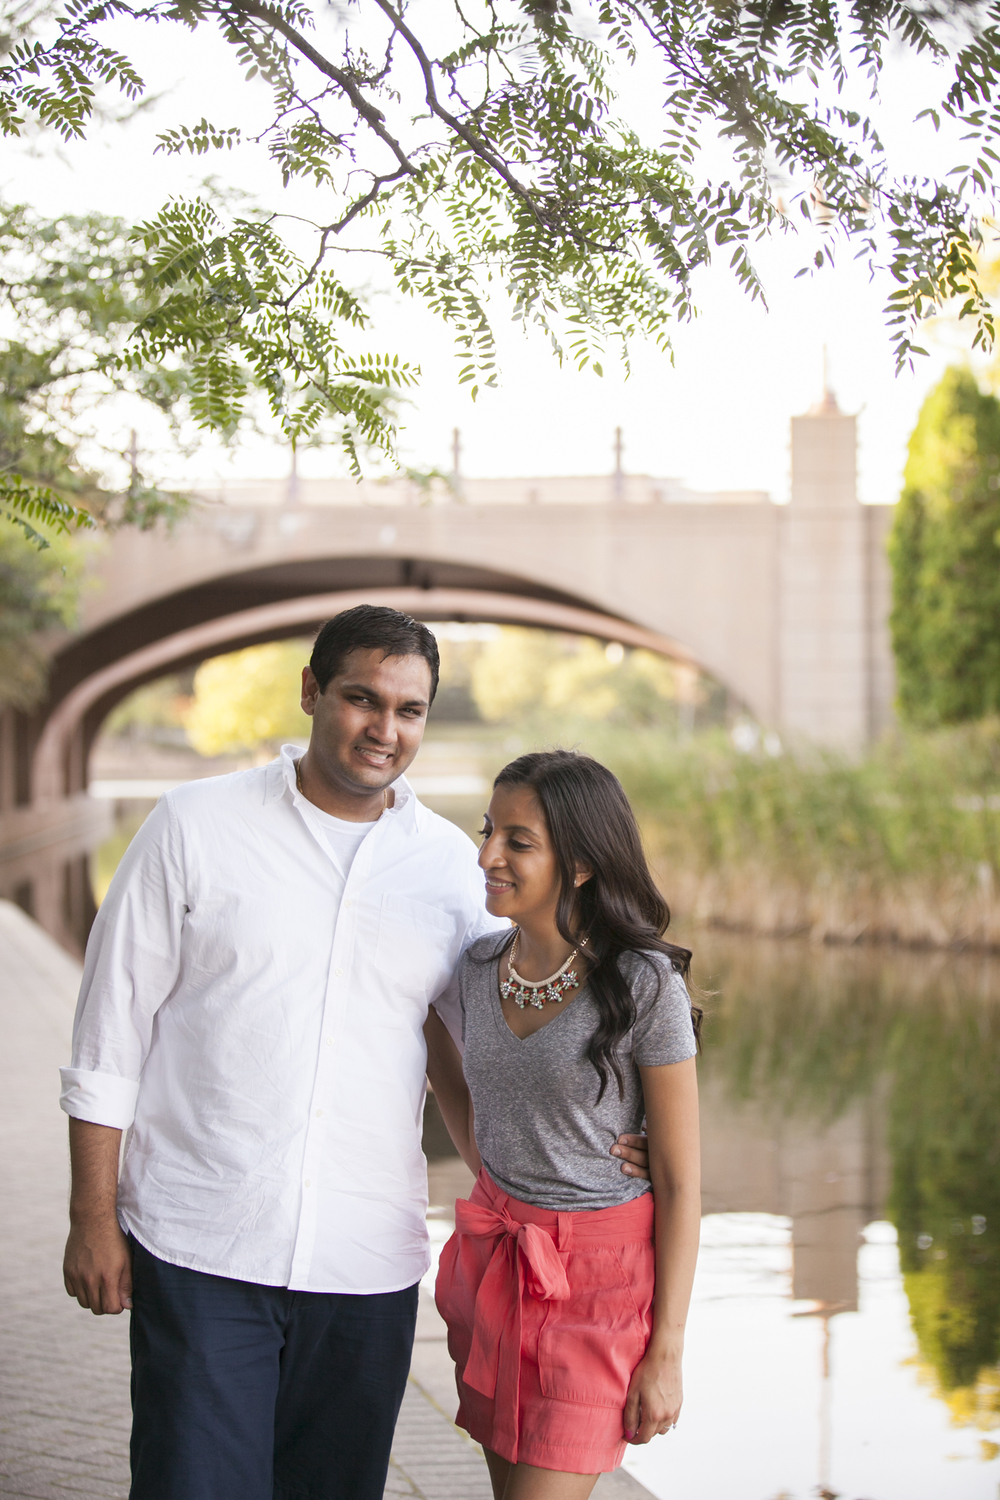 centennial_lake_edina_engagement_08.jpg